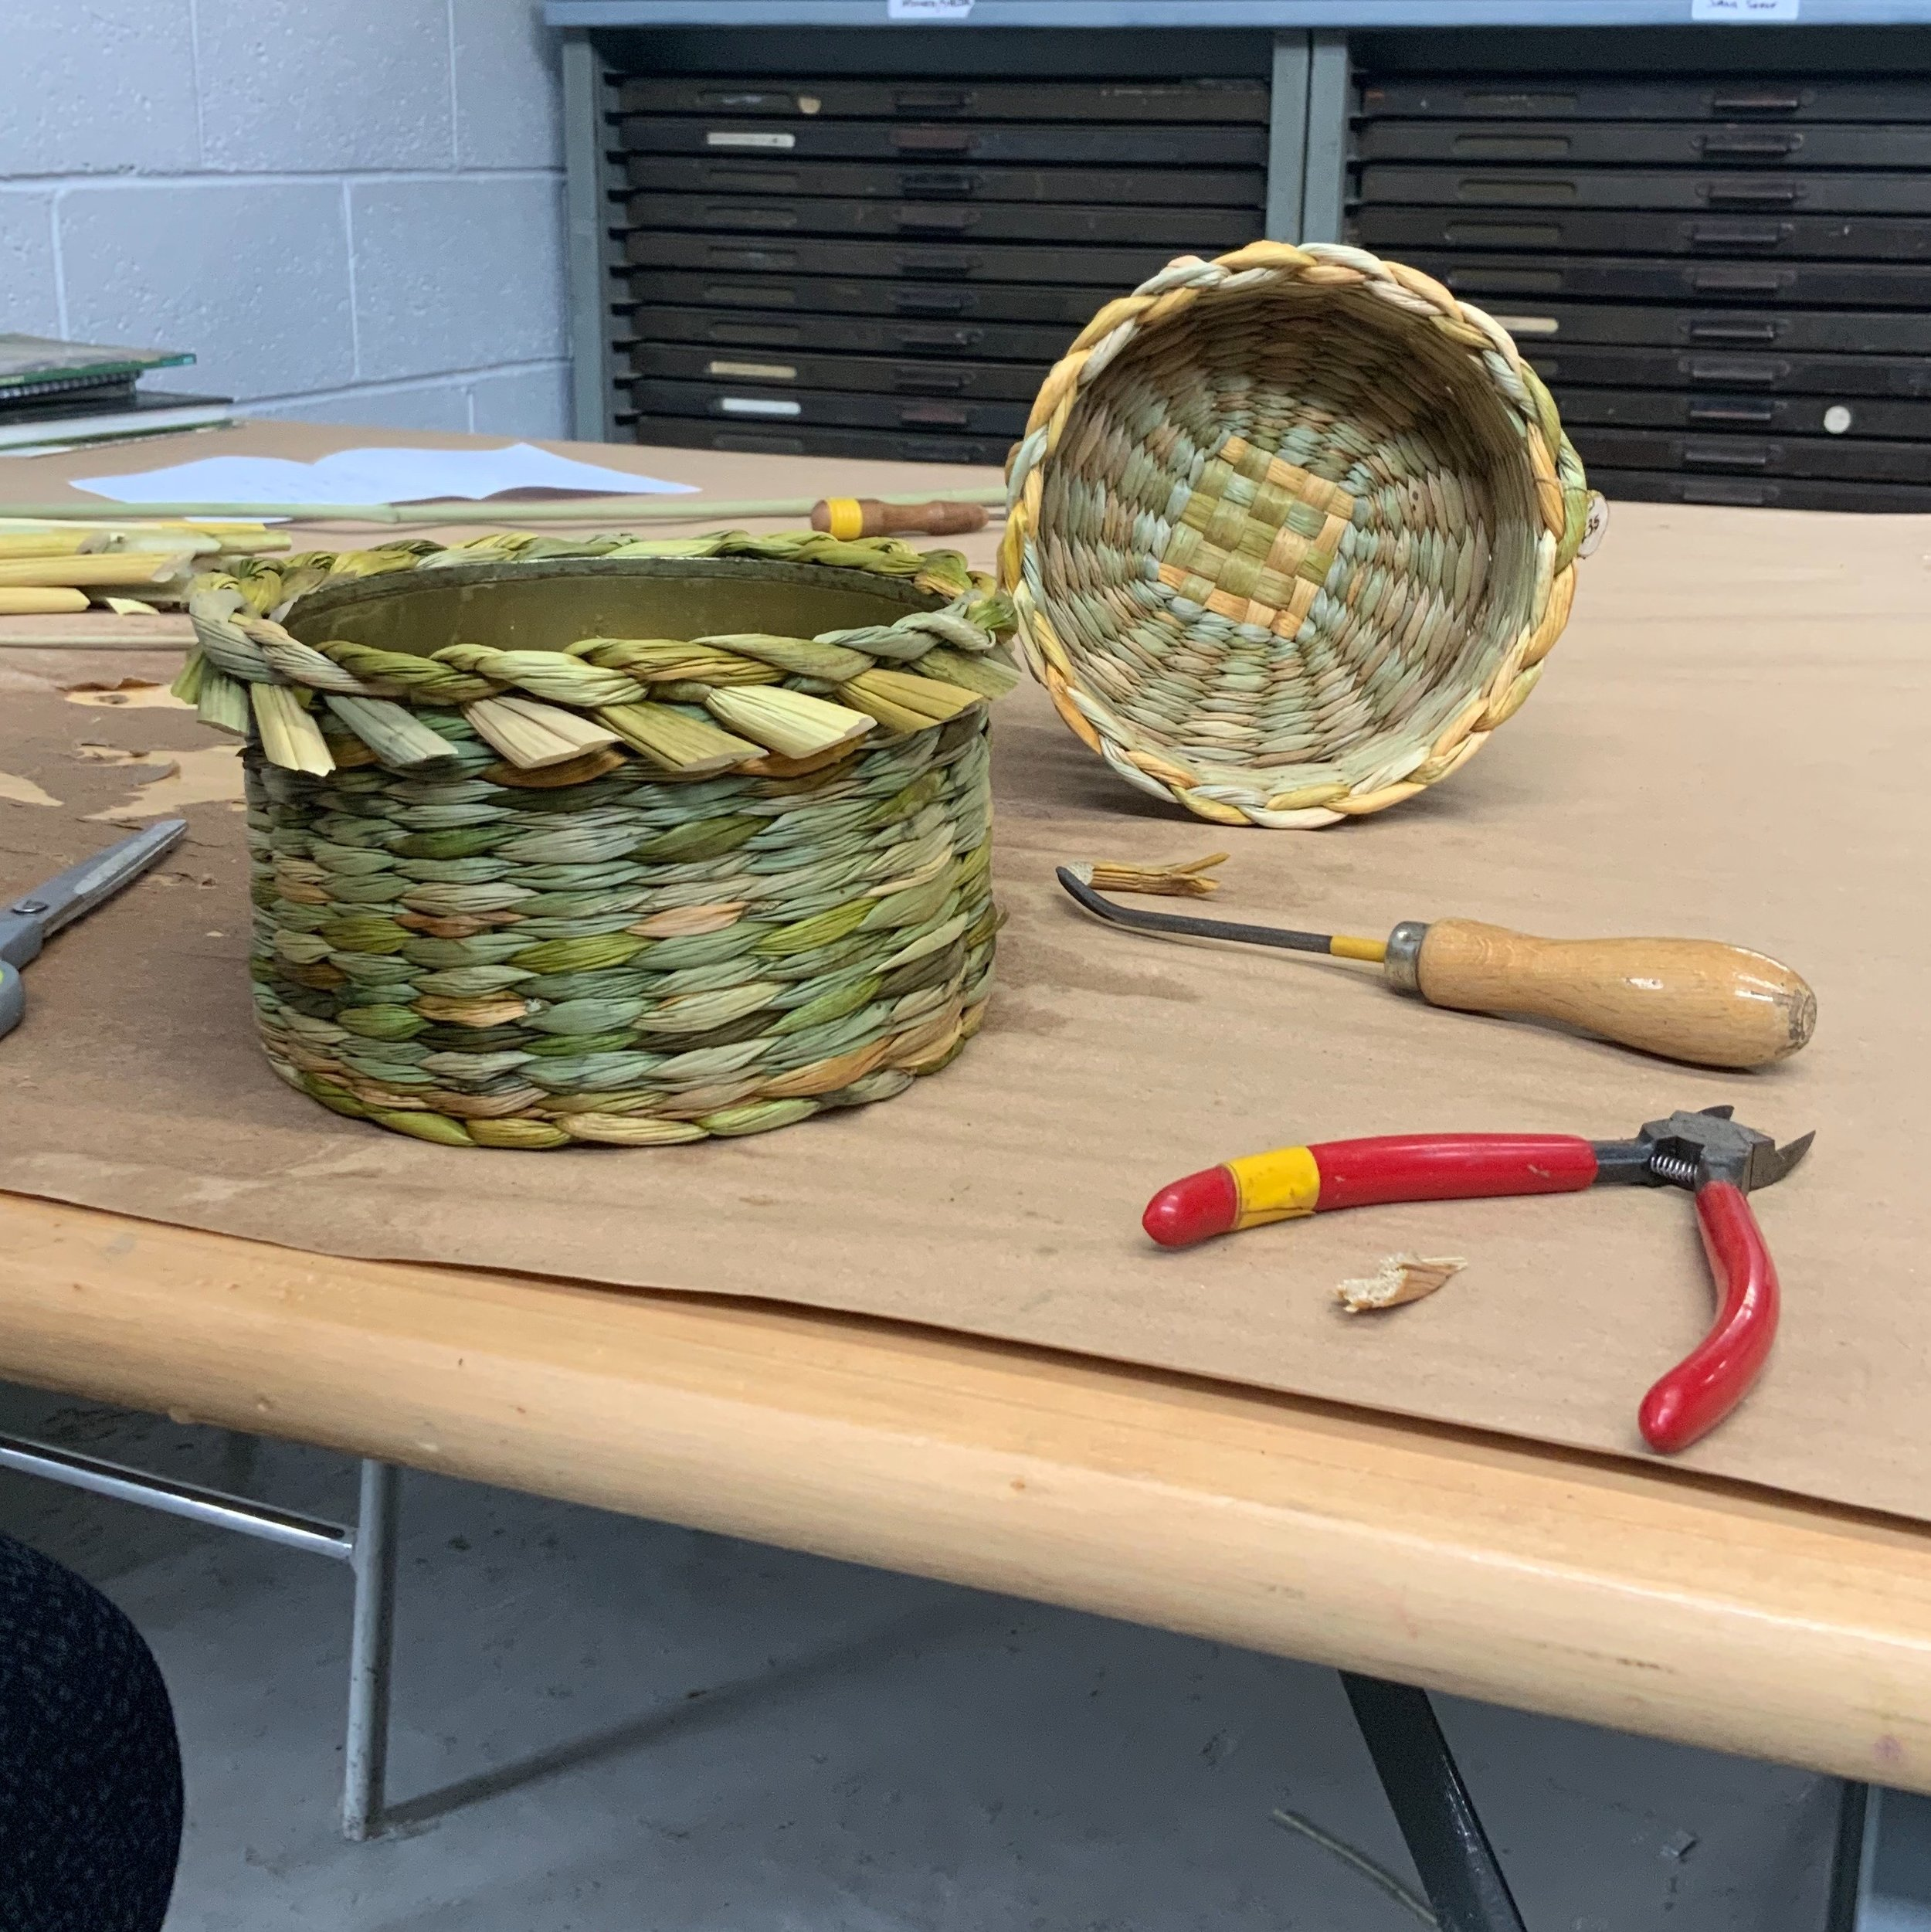 Basketmaking-4.jpg